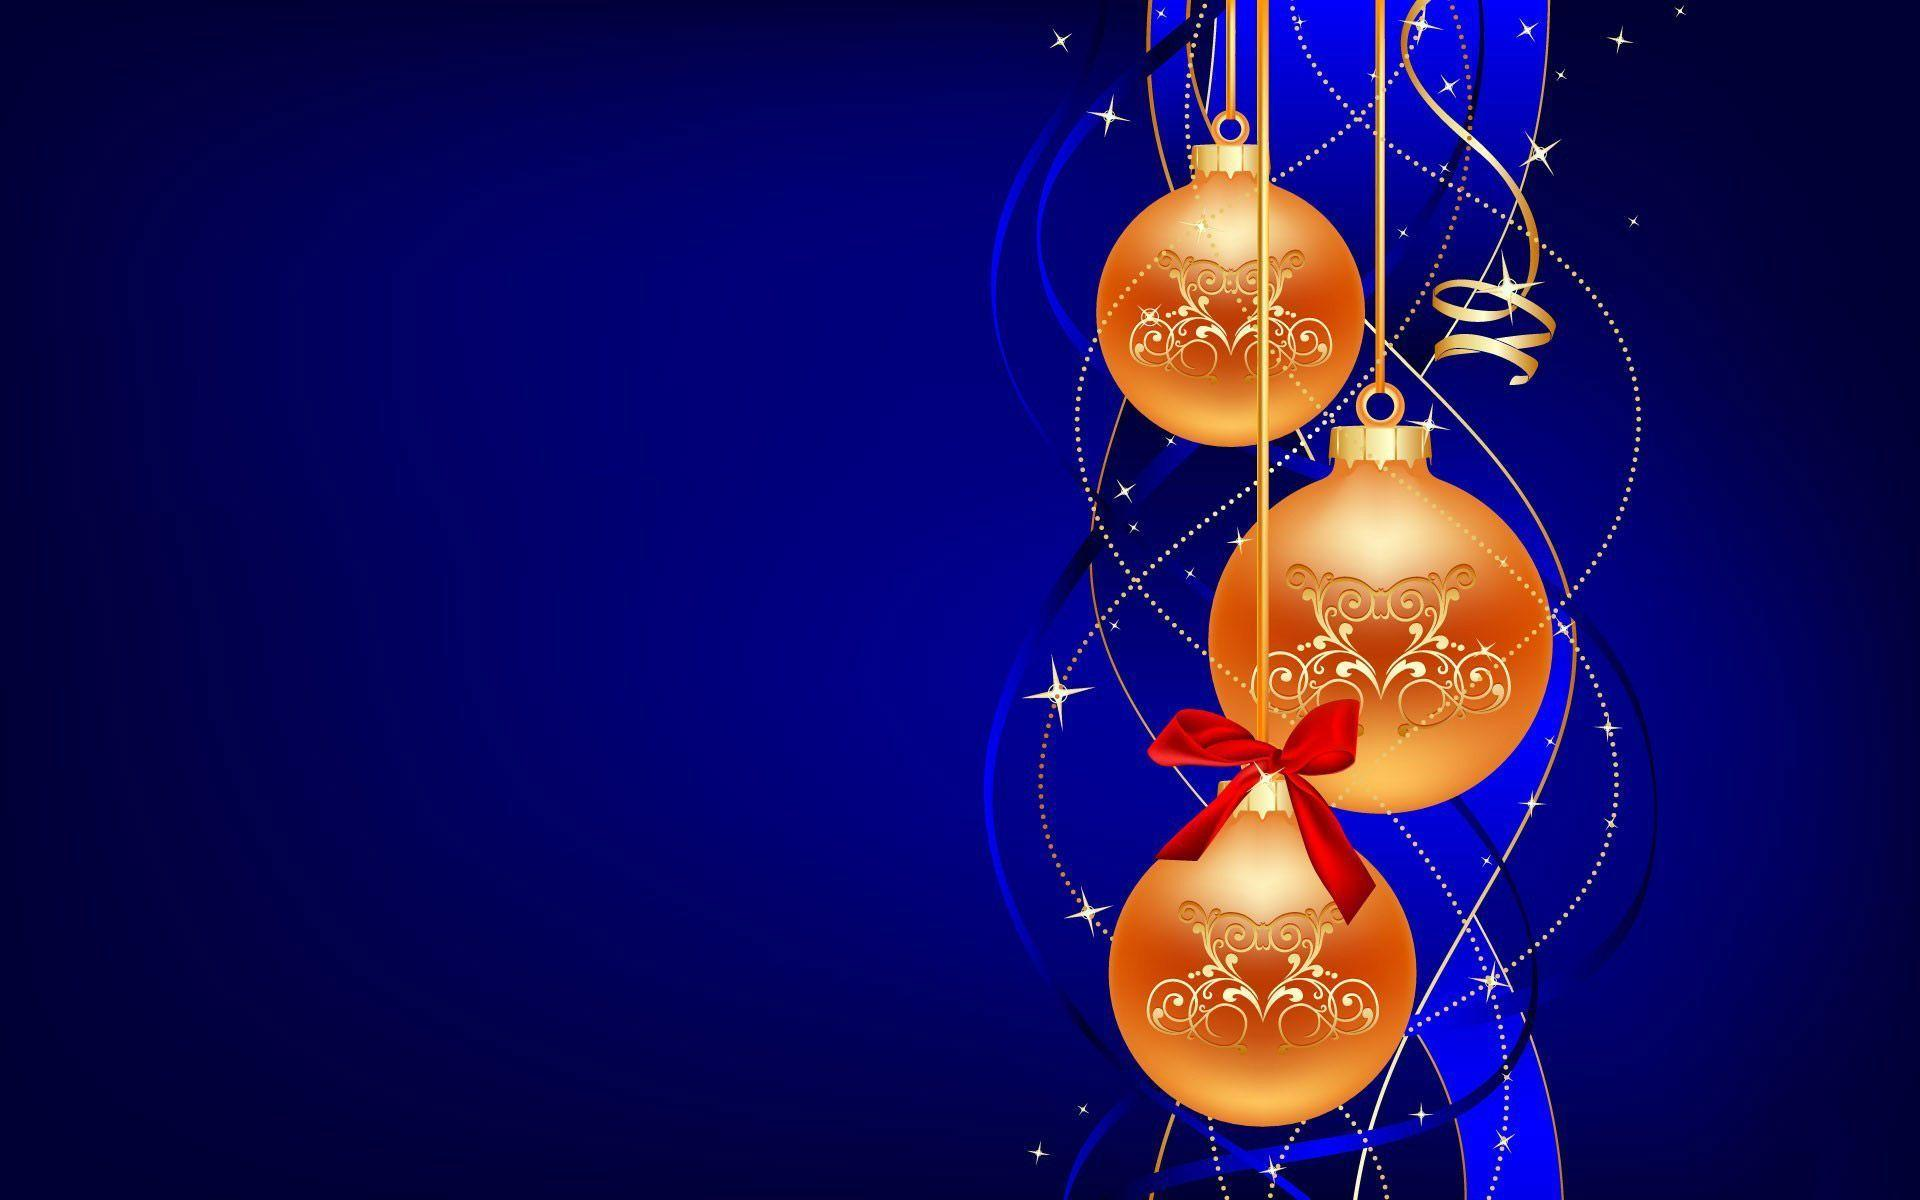 Christmas Wallpaper Backgrounds 21804 Hd Wallpapers in ...